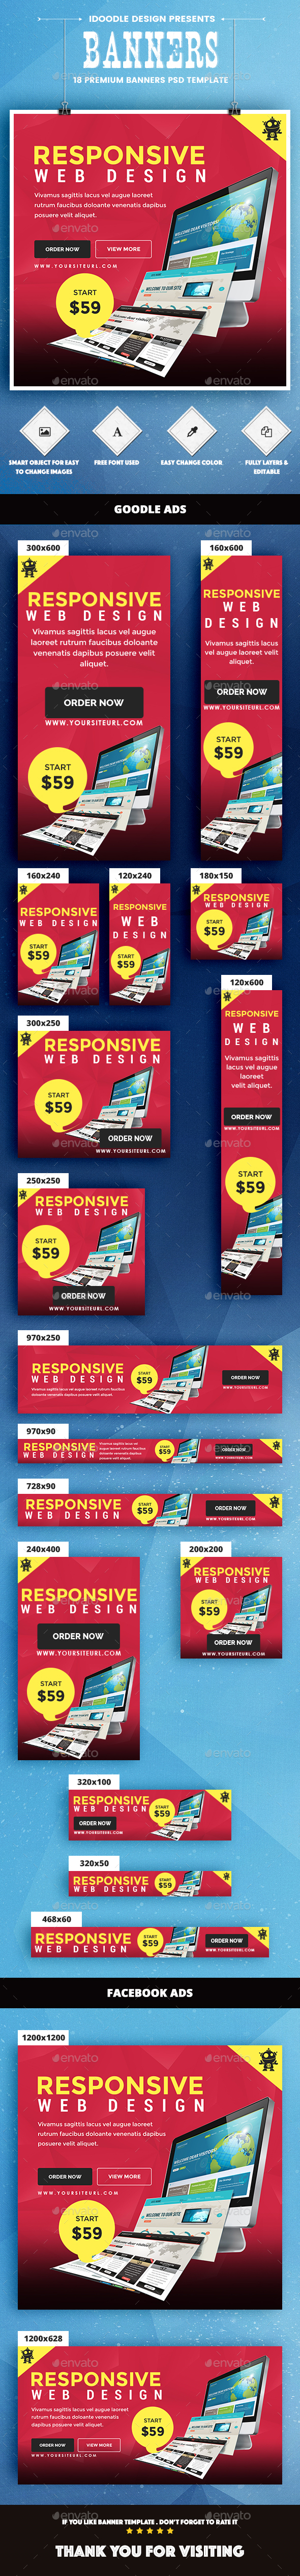 Web Design Banners Ads - Banners & Ads Web Elements